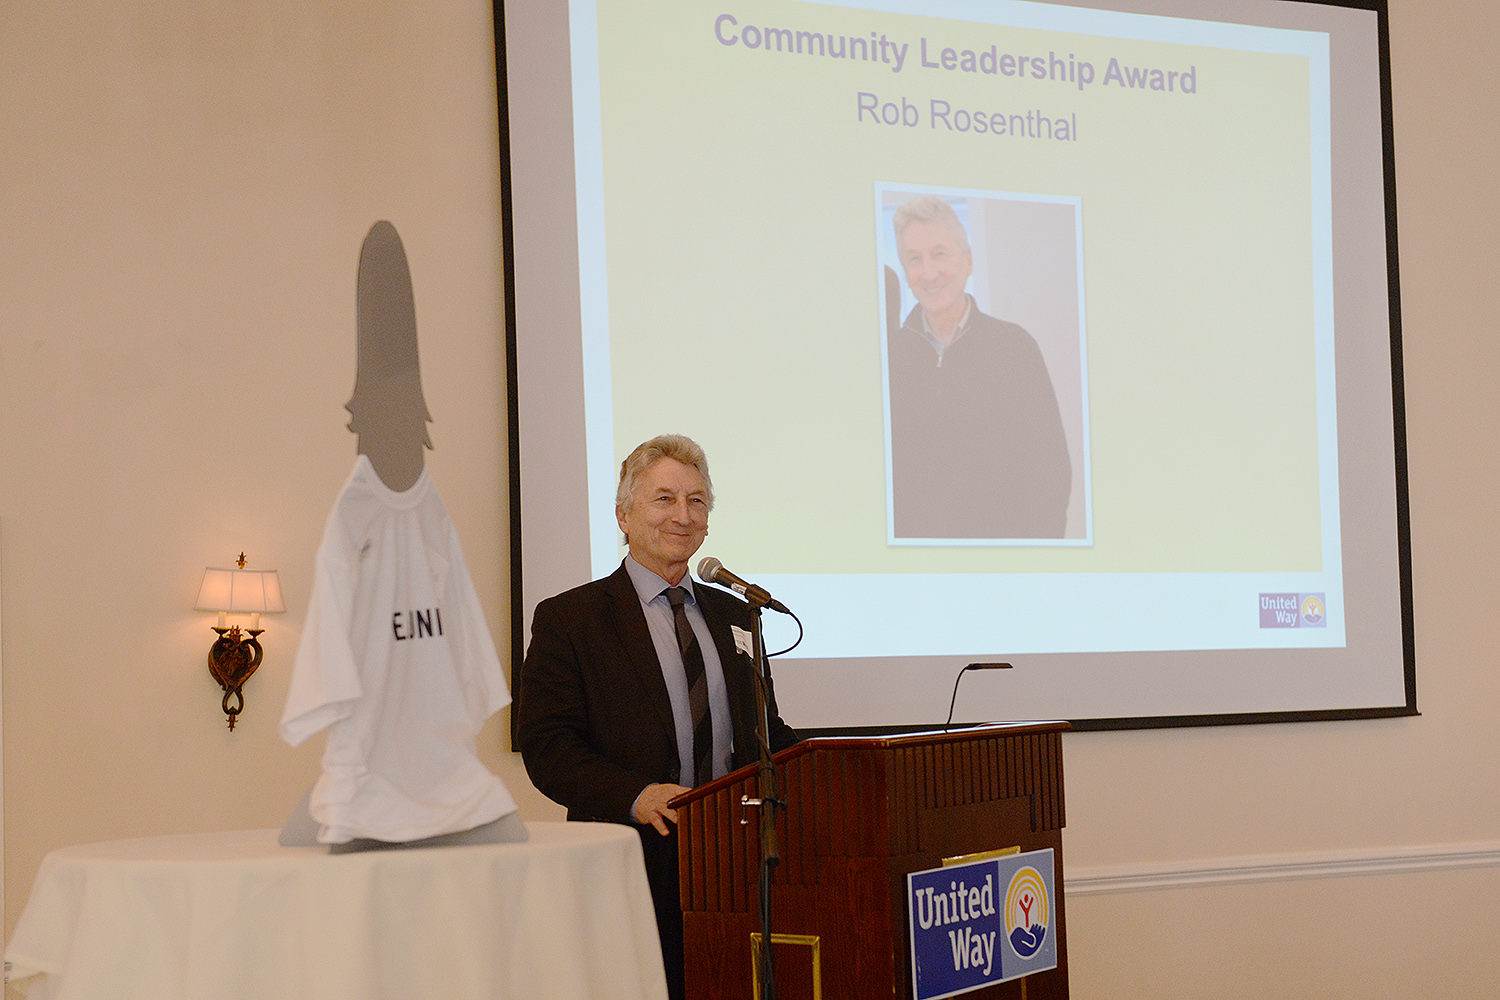 Rob Rosenthal, director of the Allbritton Center for the Study of Public Life and the John E. Andrus Professor of Sociology, was honored with the Community Leadership Award during the Middlesex United Way Annual Meeting on Jan. 28.